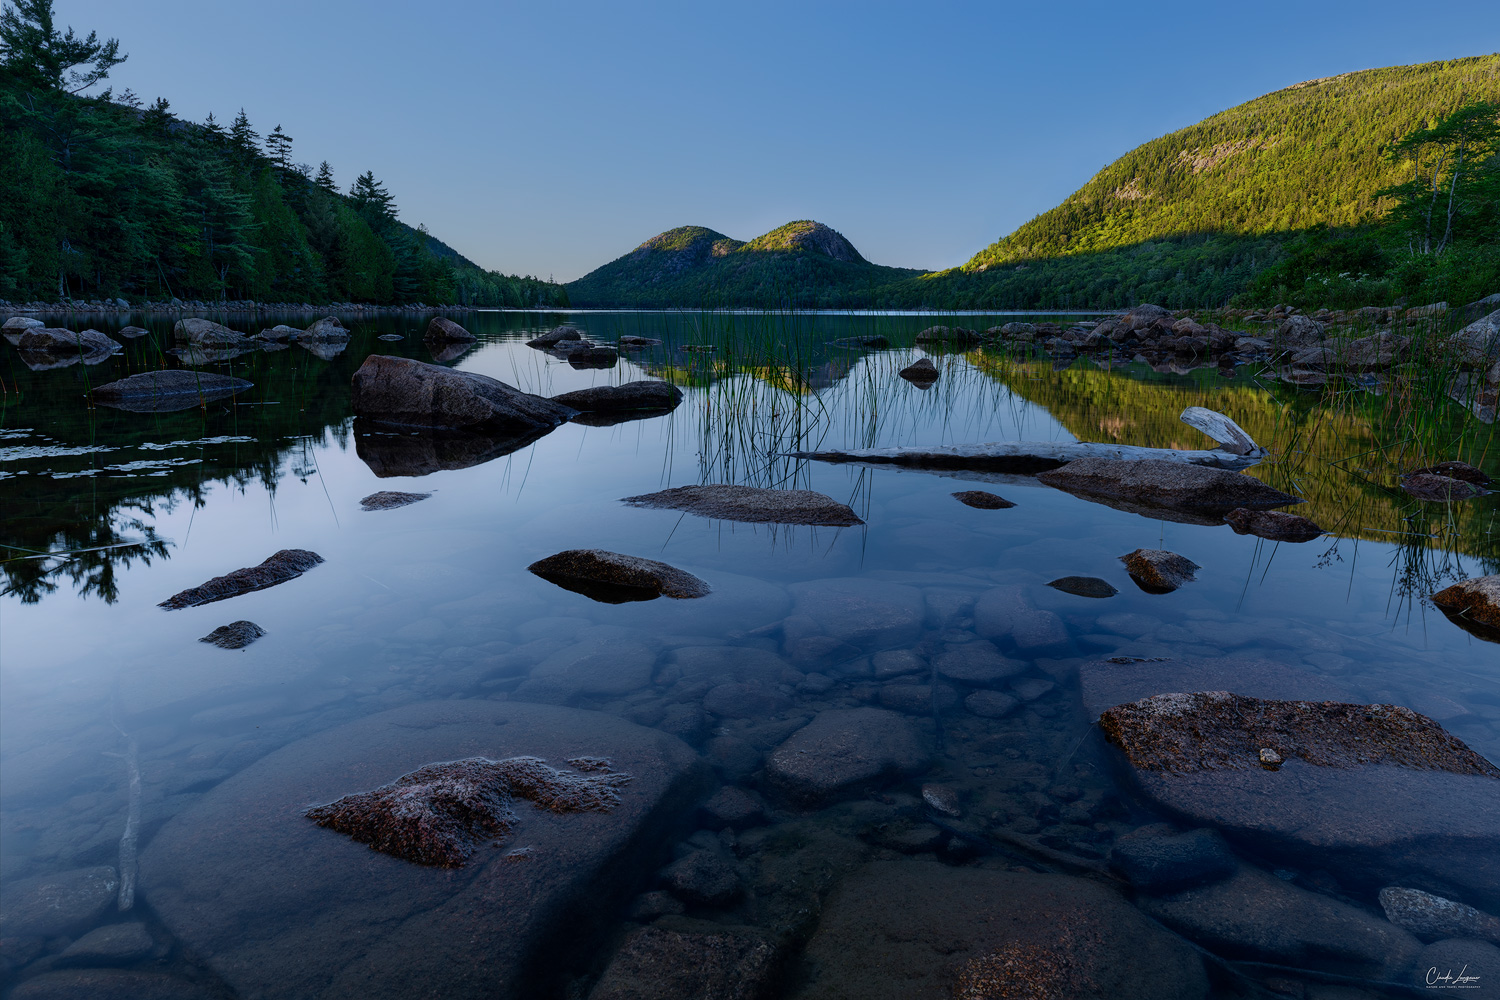 View of the Bubbles at Jordan Pond in Acadia National Park at sunset.